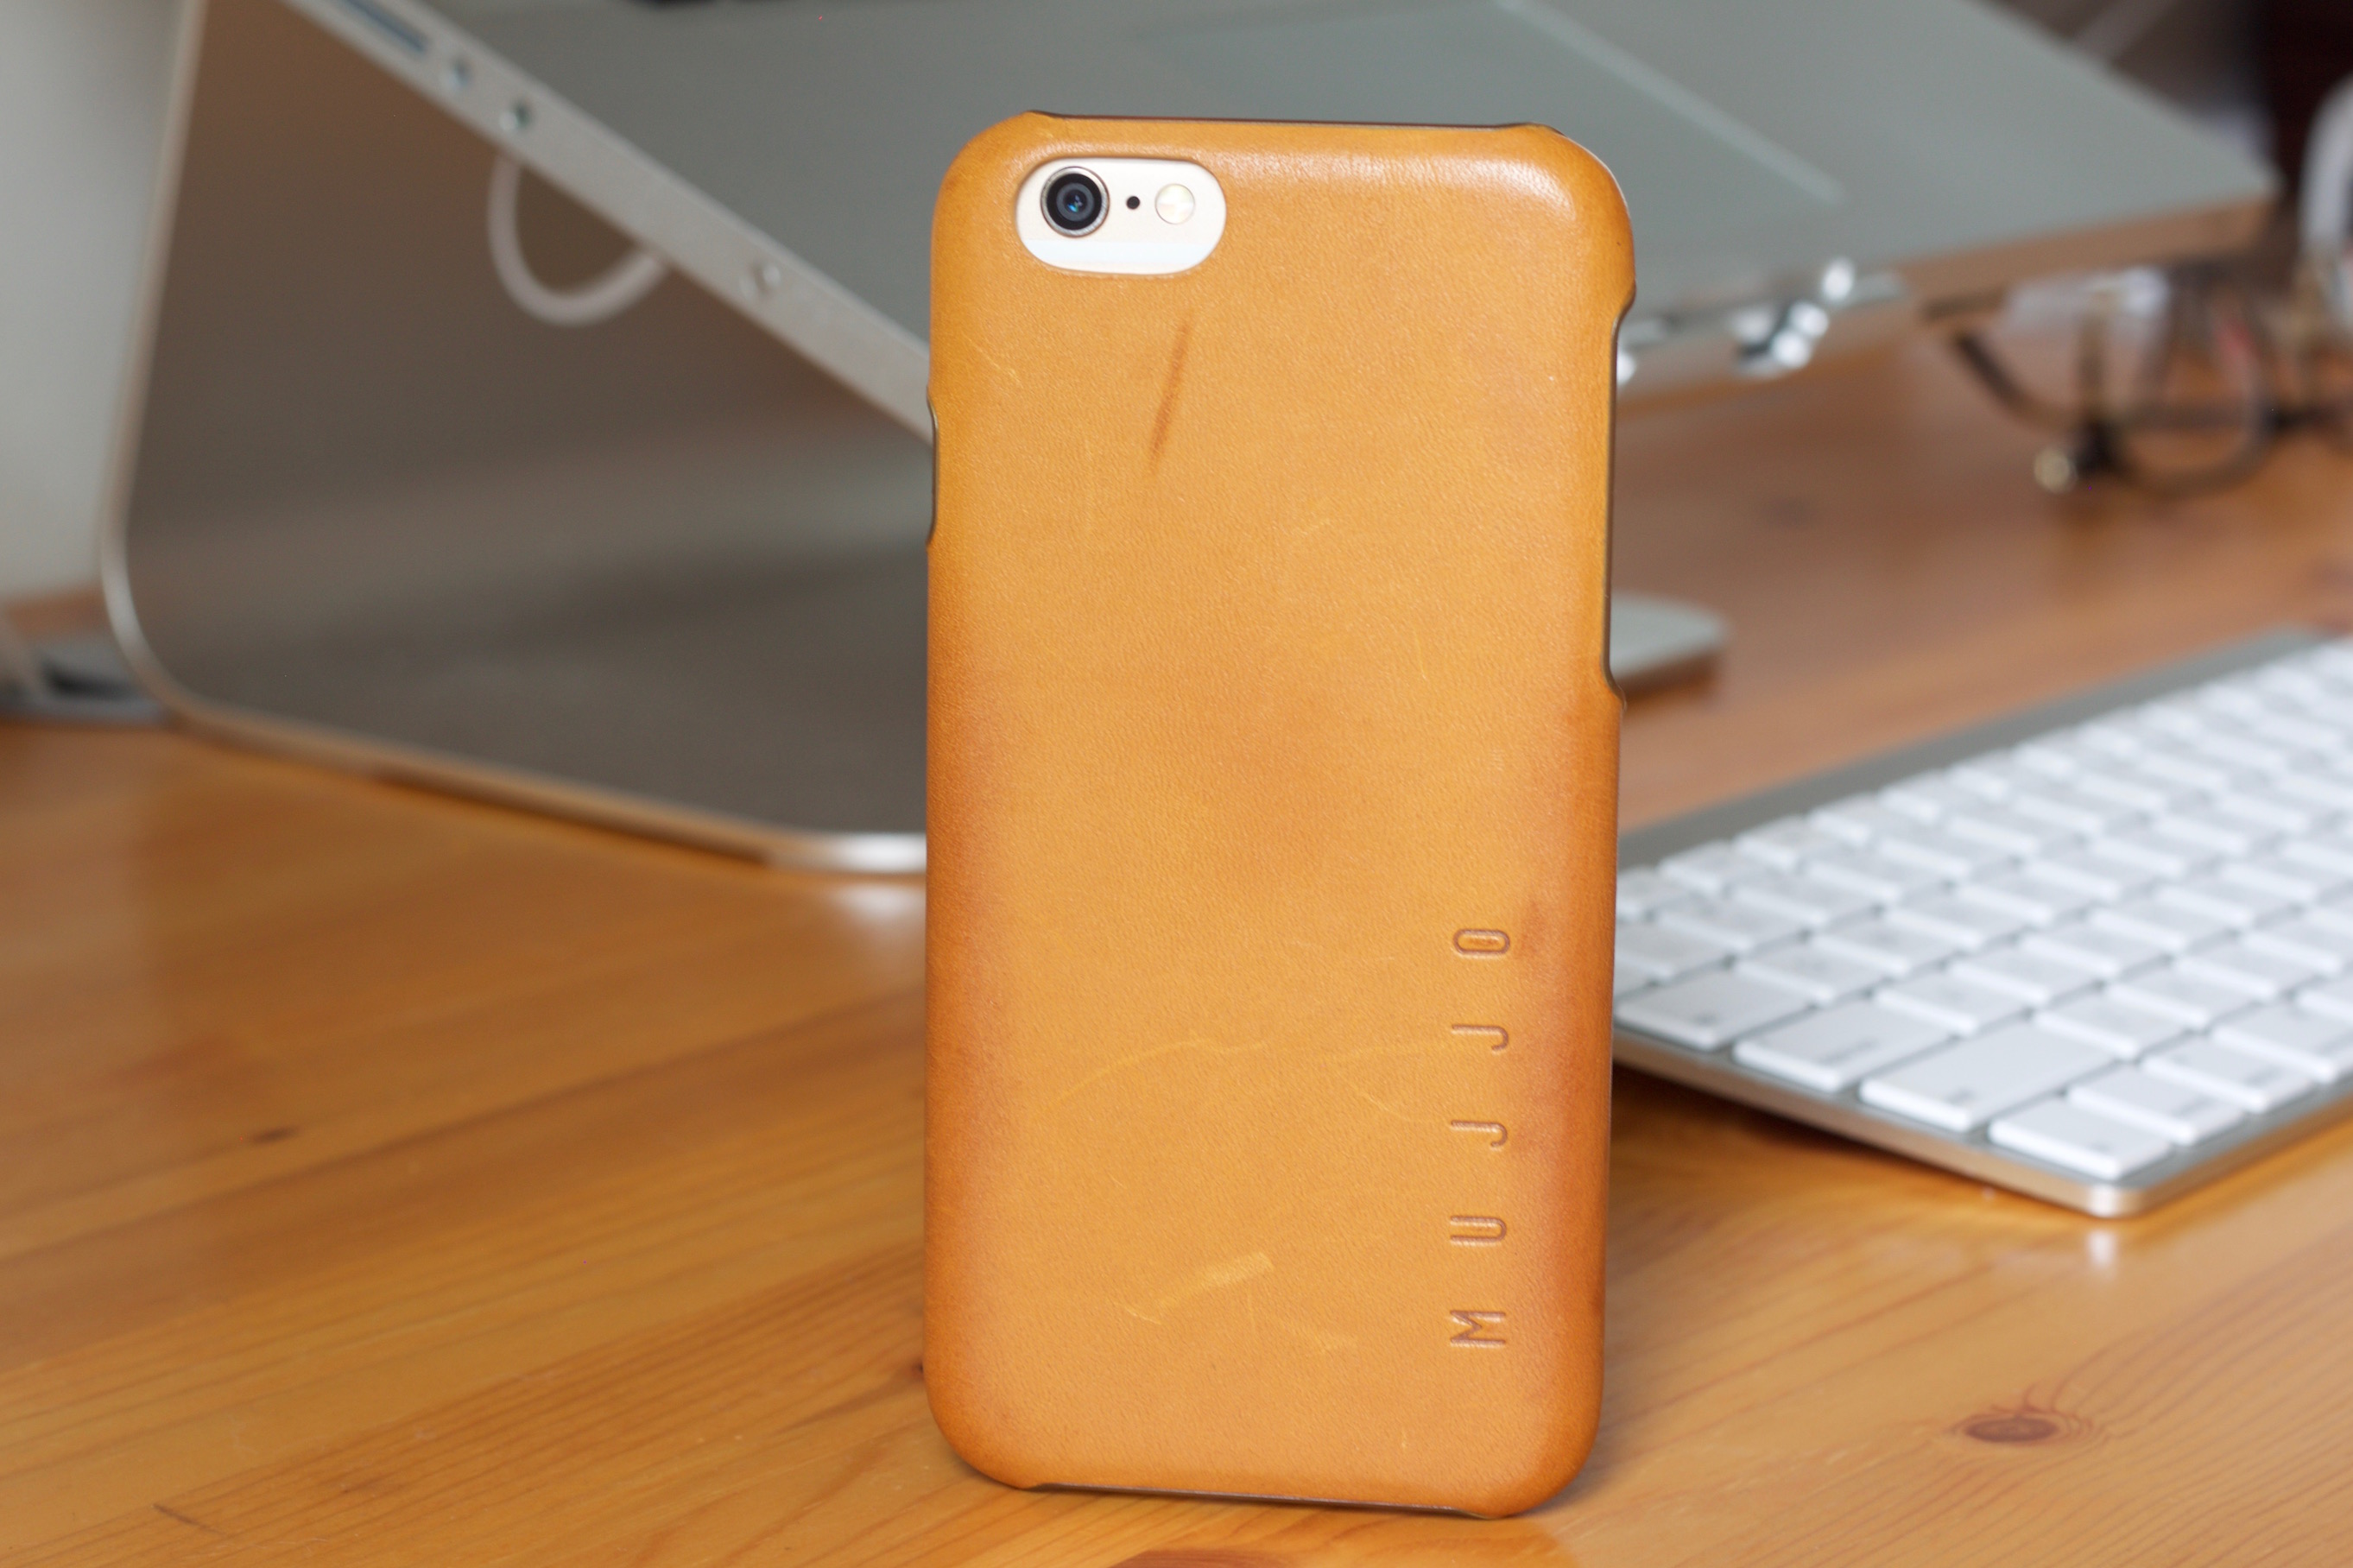 Mujjo Leather Case in Tan with an iPhone 6 propped vertically in front of a keyboard